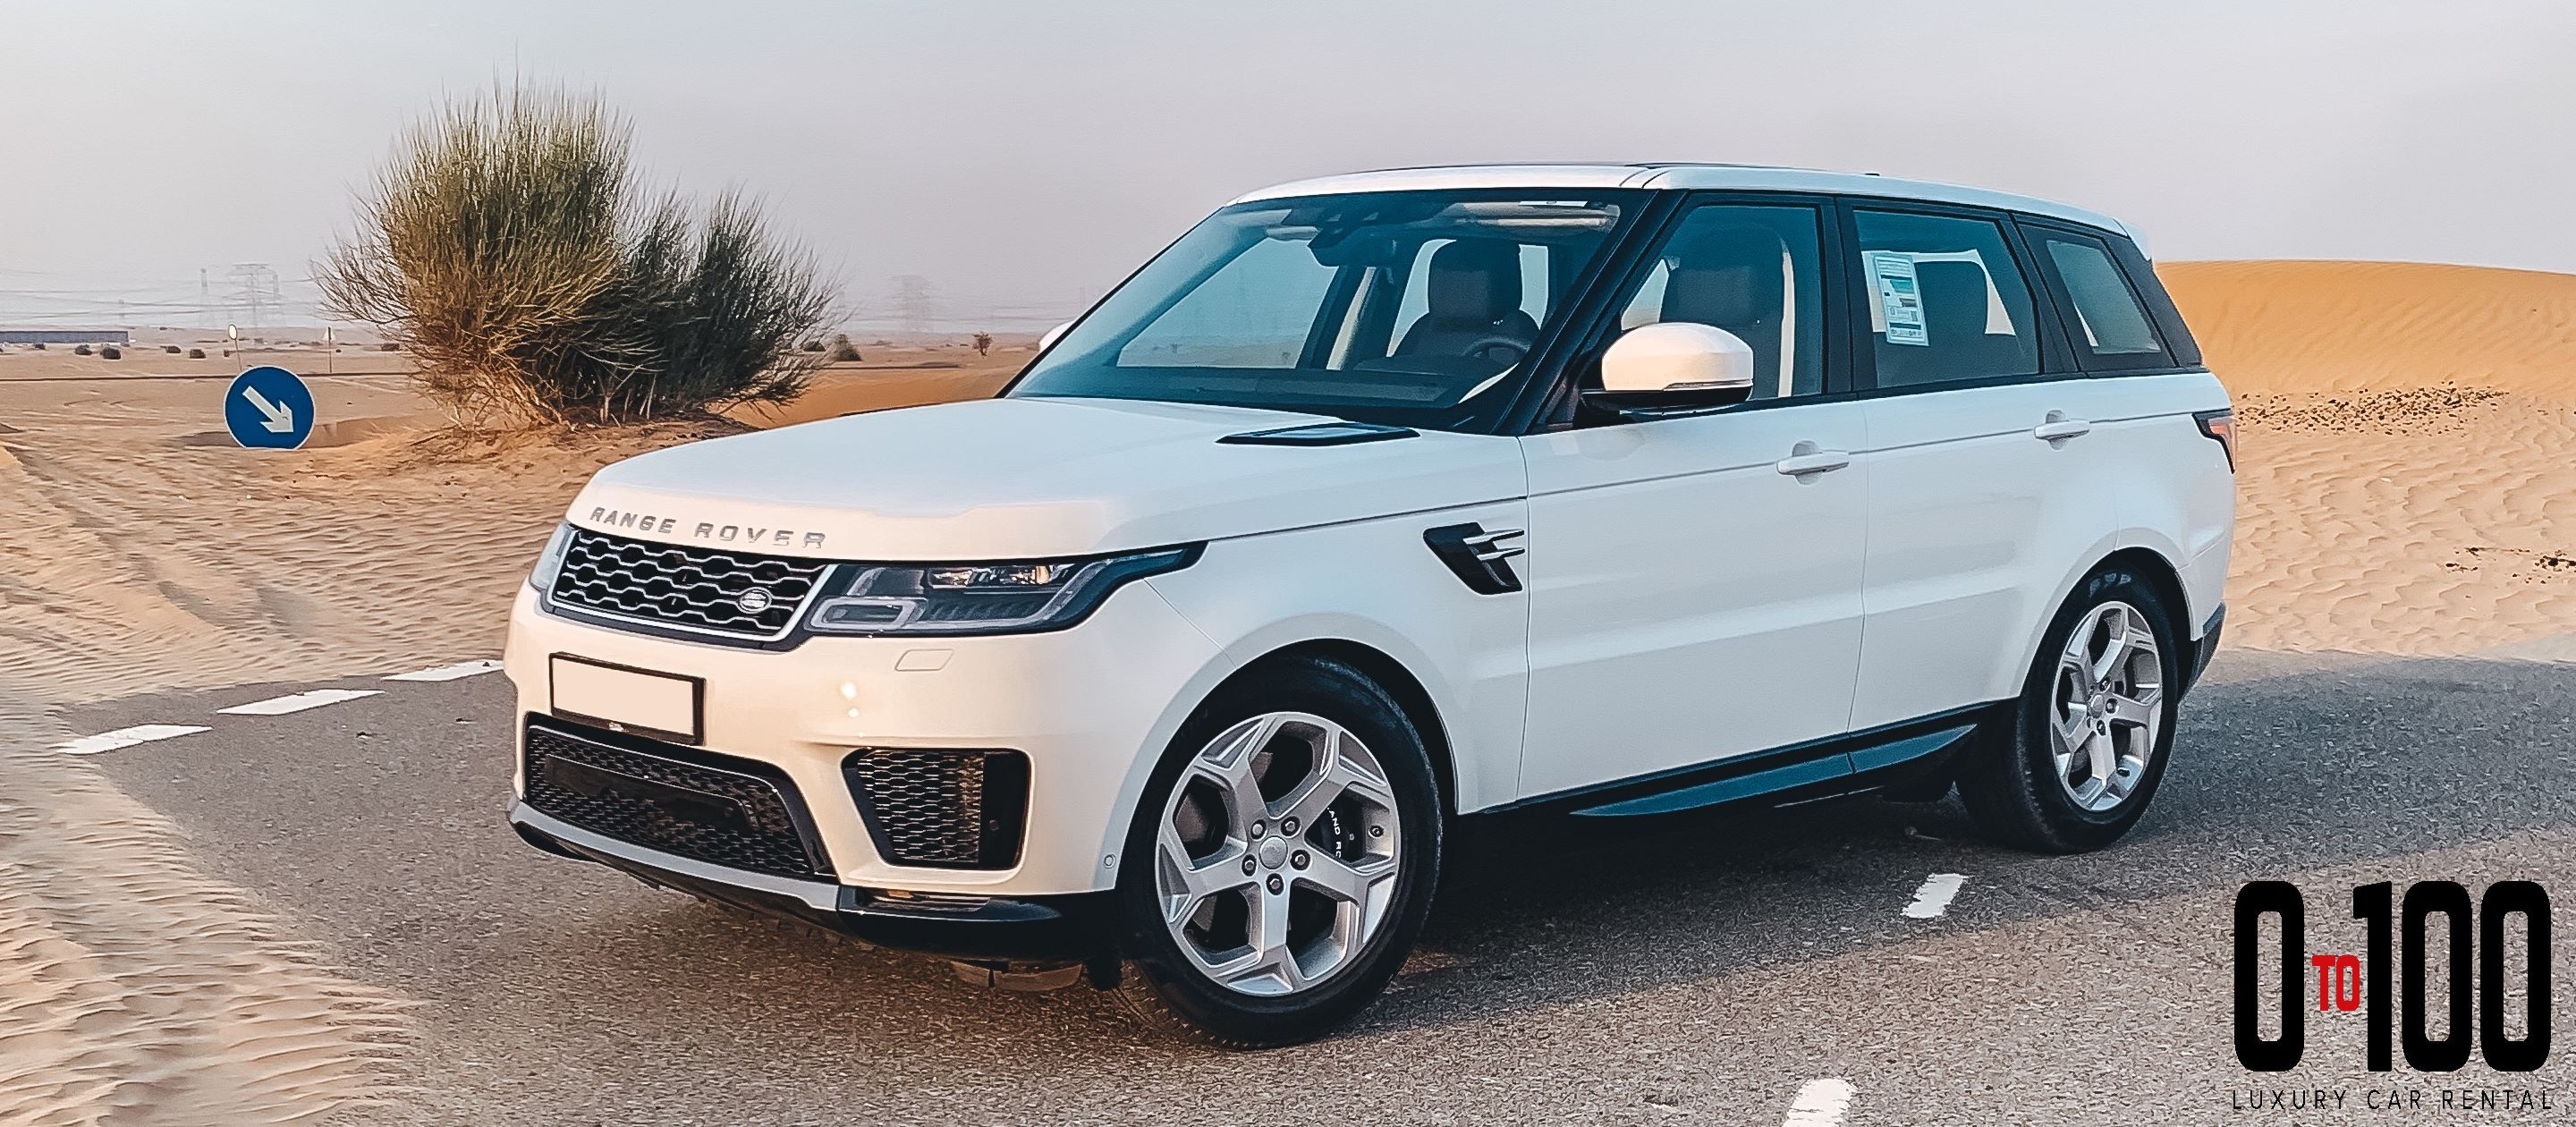 Range Rover Sport in white color